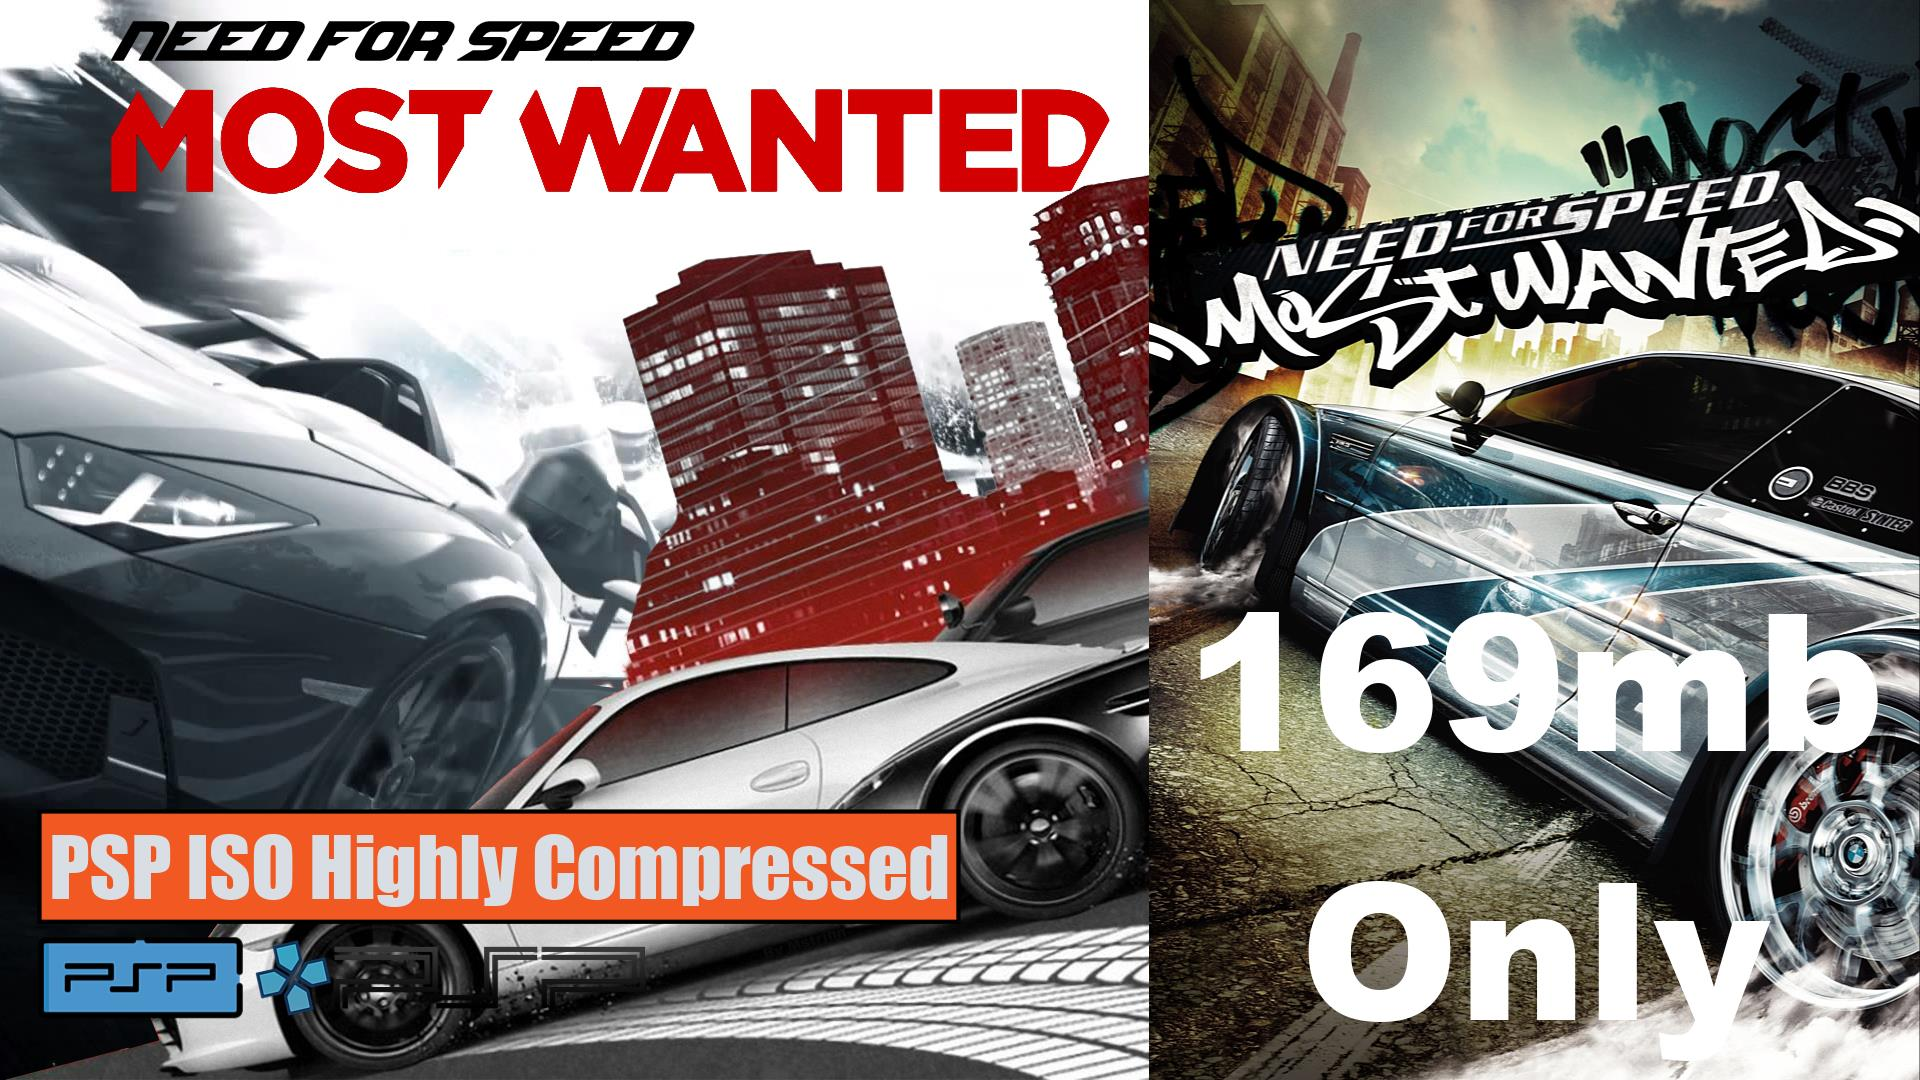 Need for Speed Most Wanted PSP ISO Highly Compressed